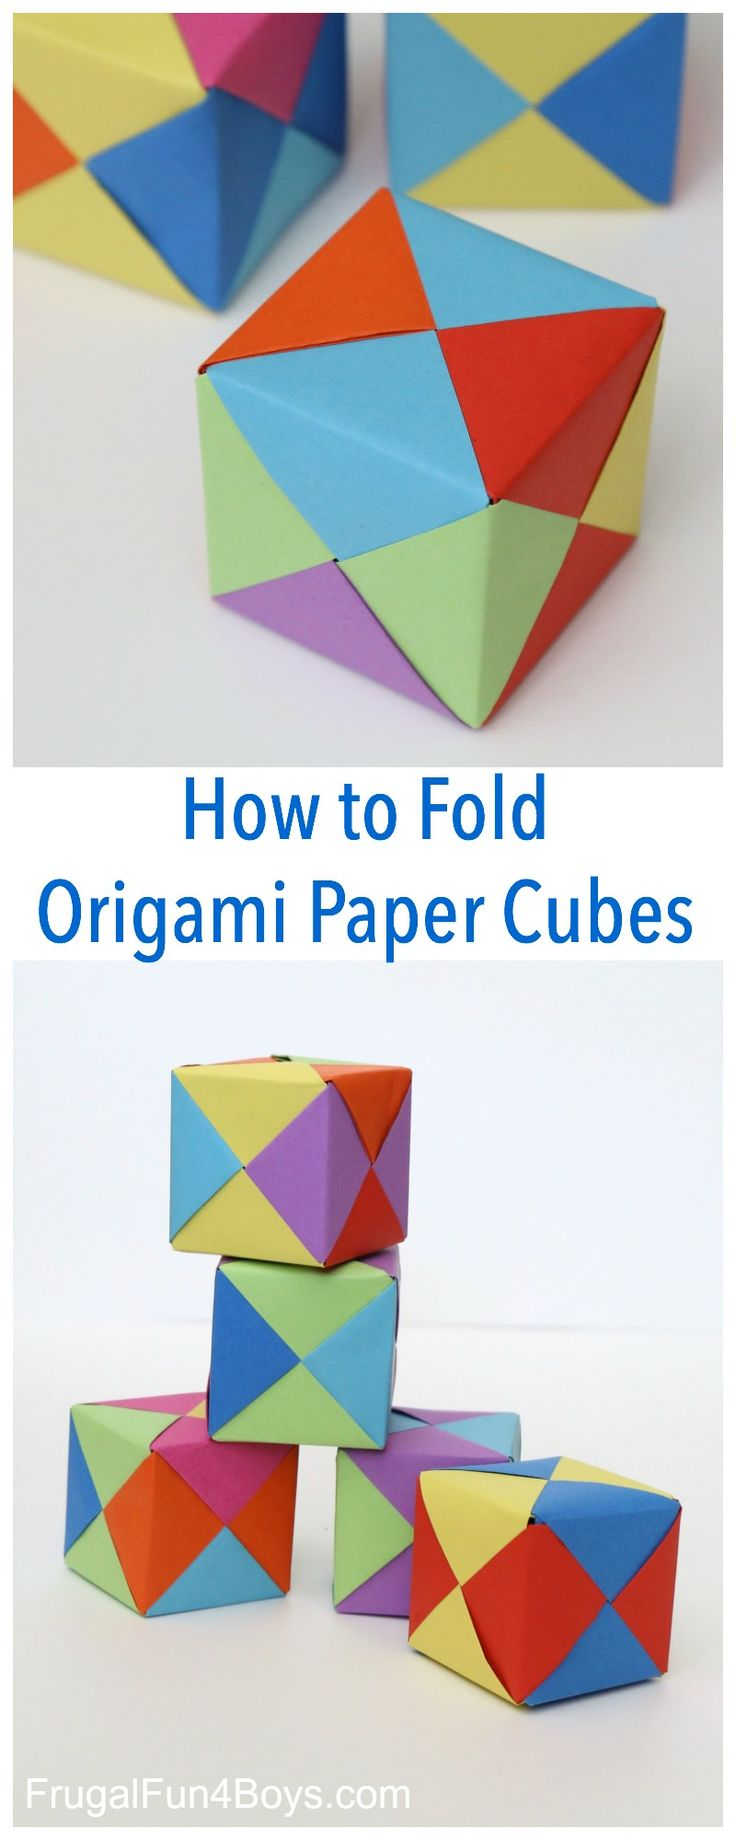 How to Fold Origami Paper Cubes - Frugal Fun For Boys and Girls